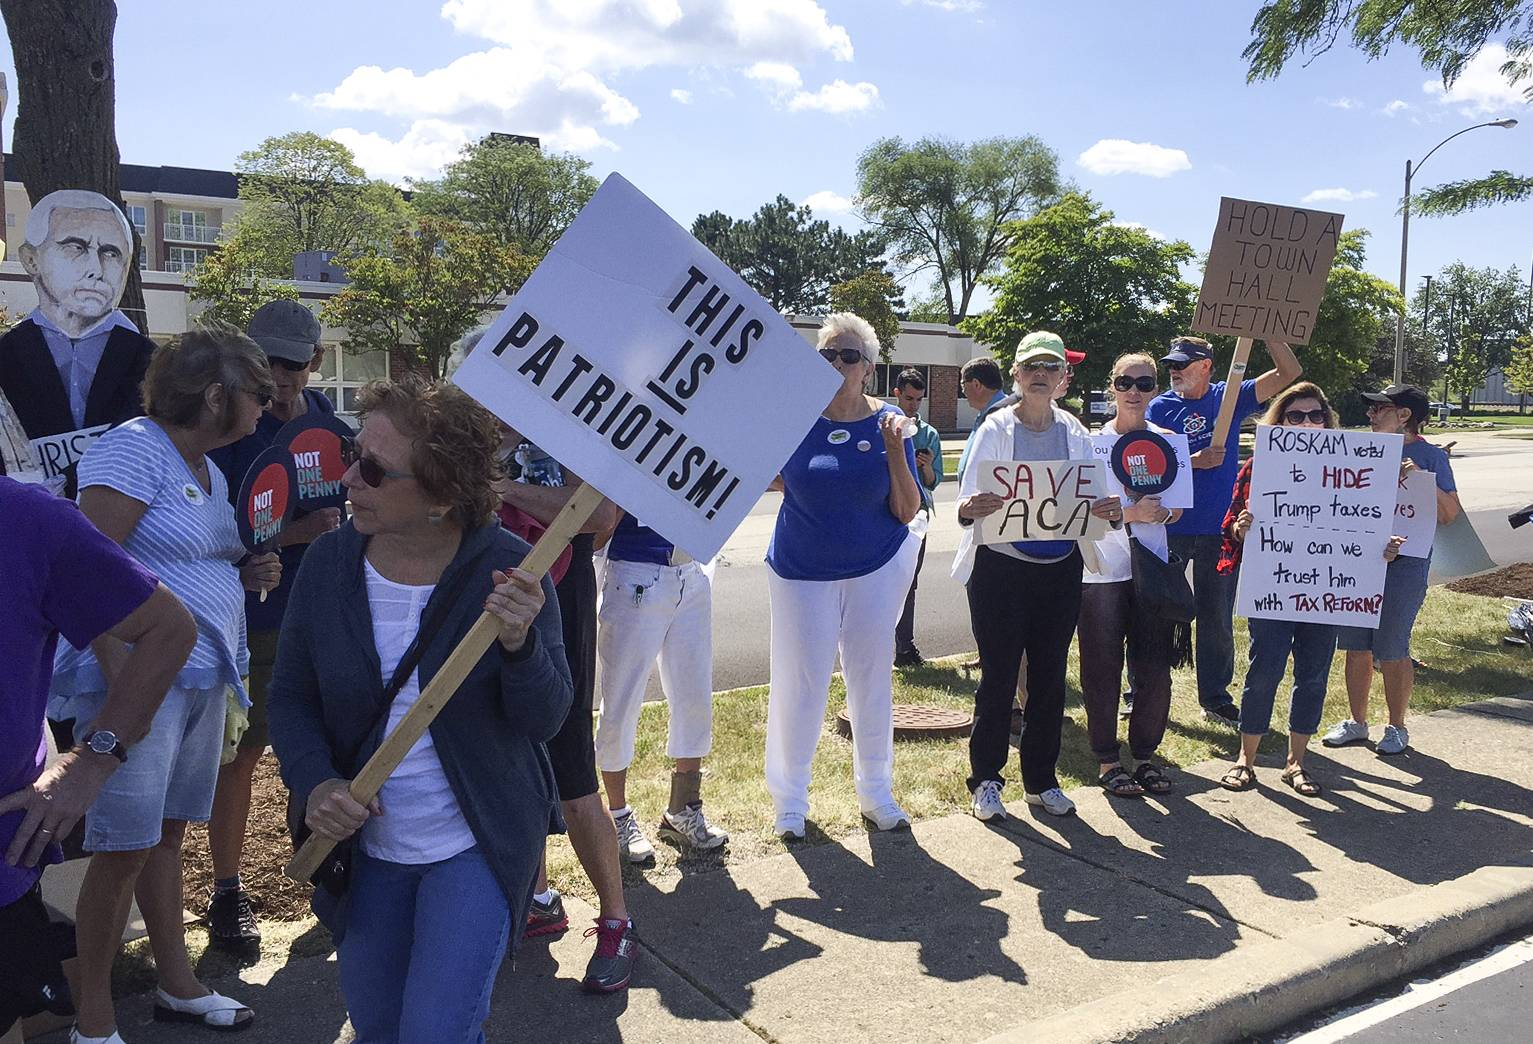 Protesters march at an appearance Wednesday by U.S. Rep. Peter Roskam Wednesday in Palatine.